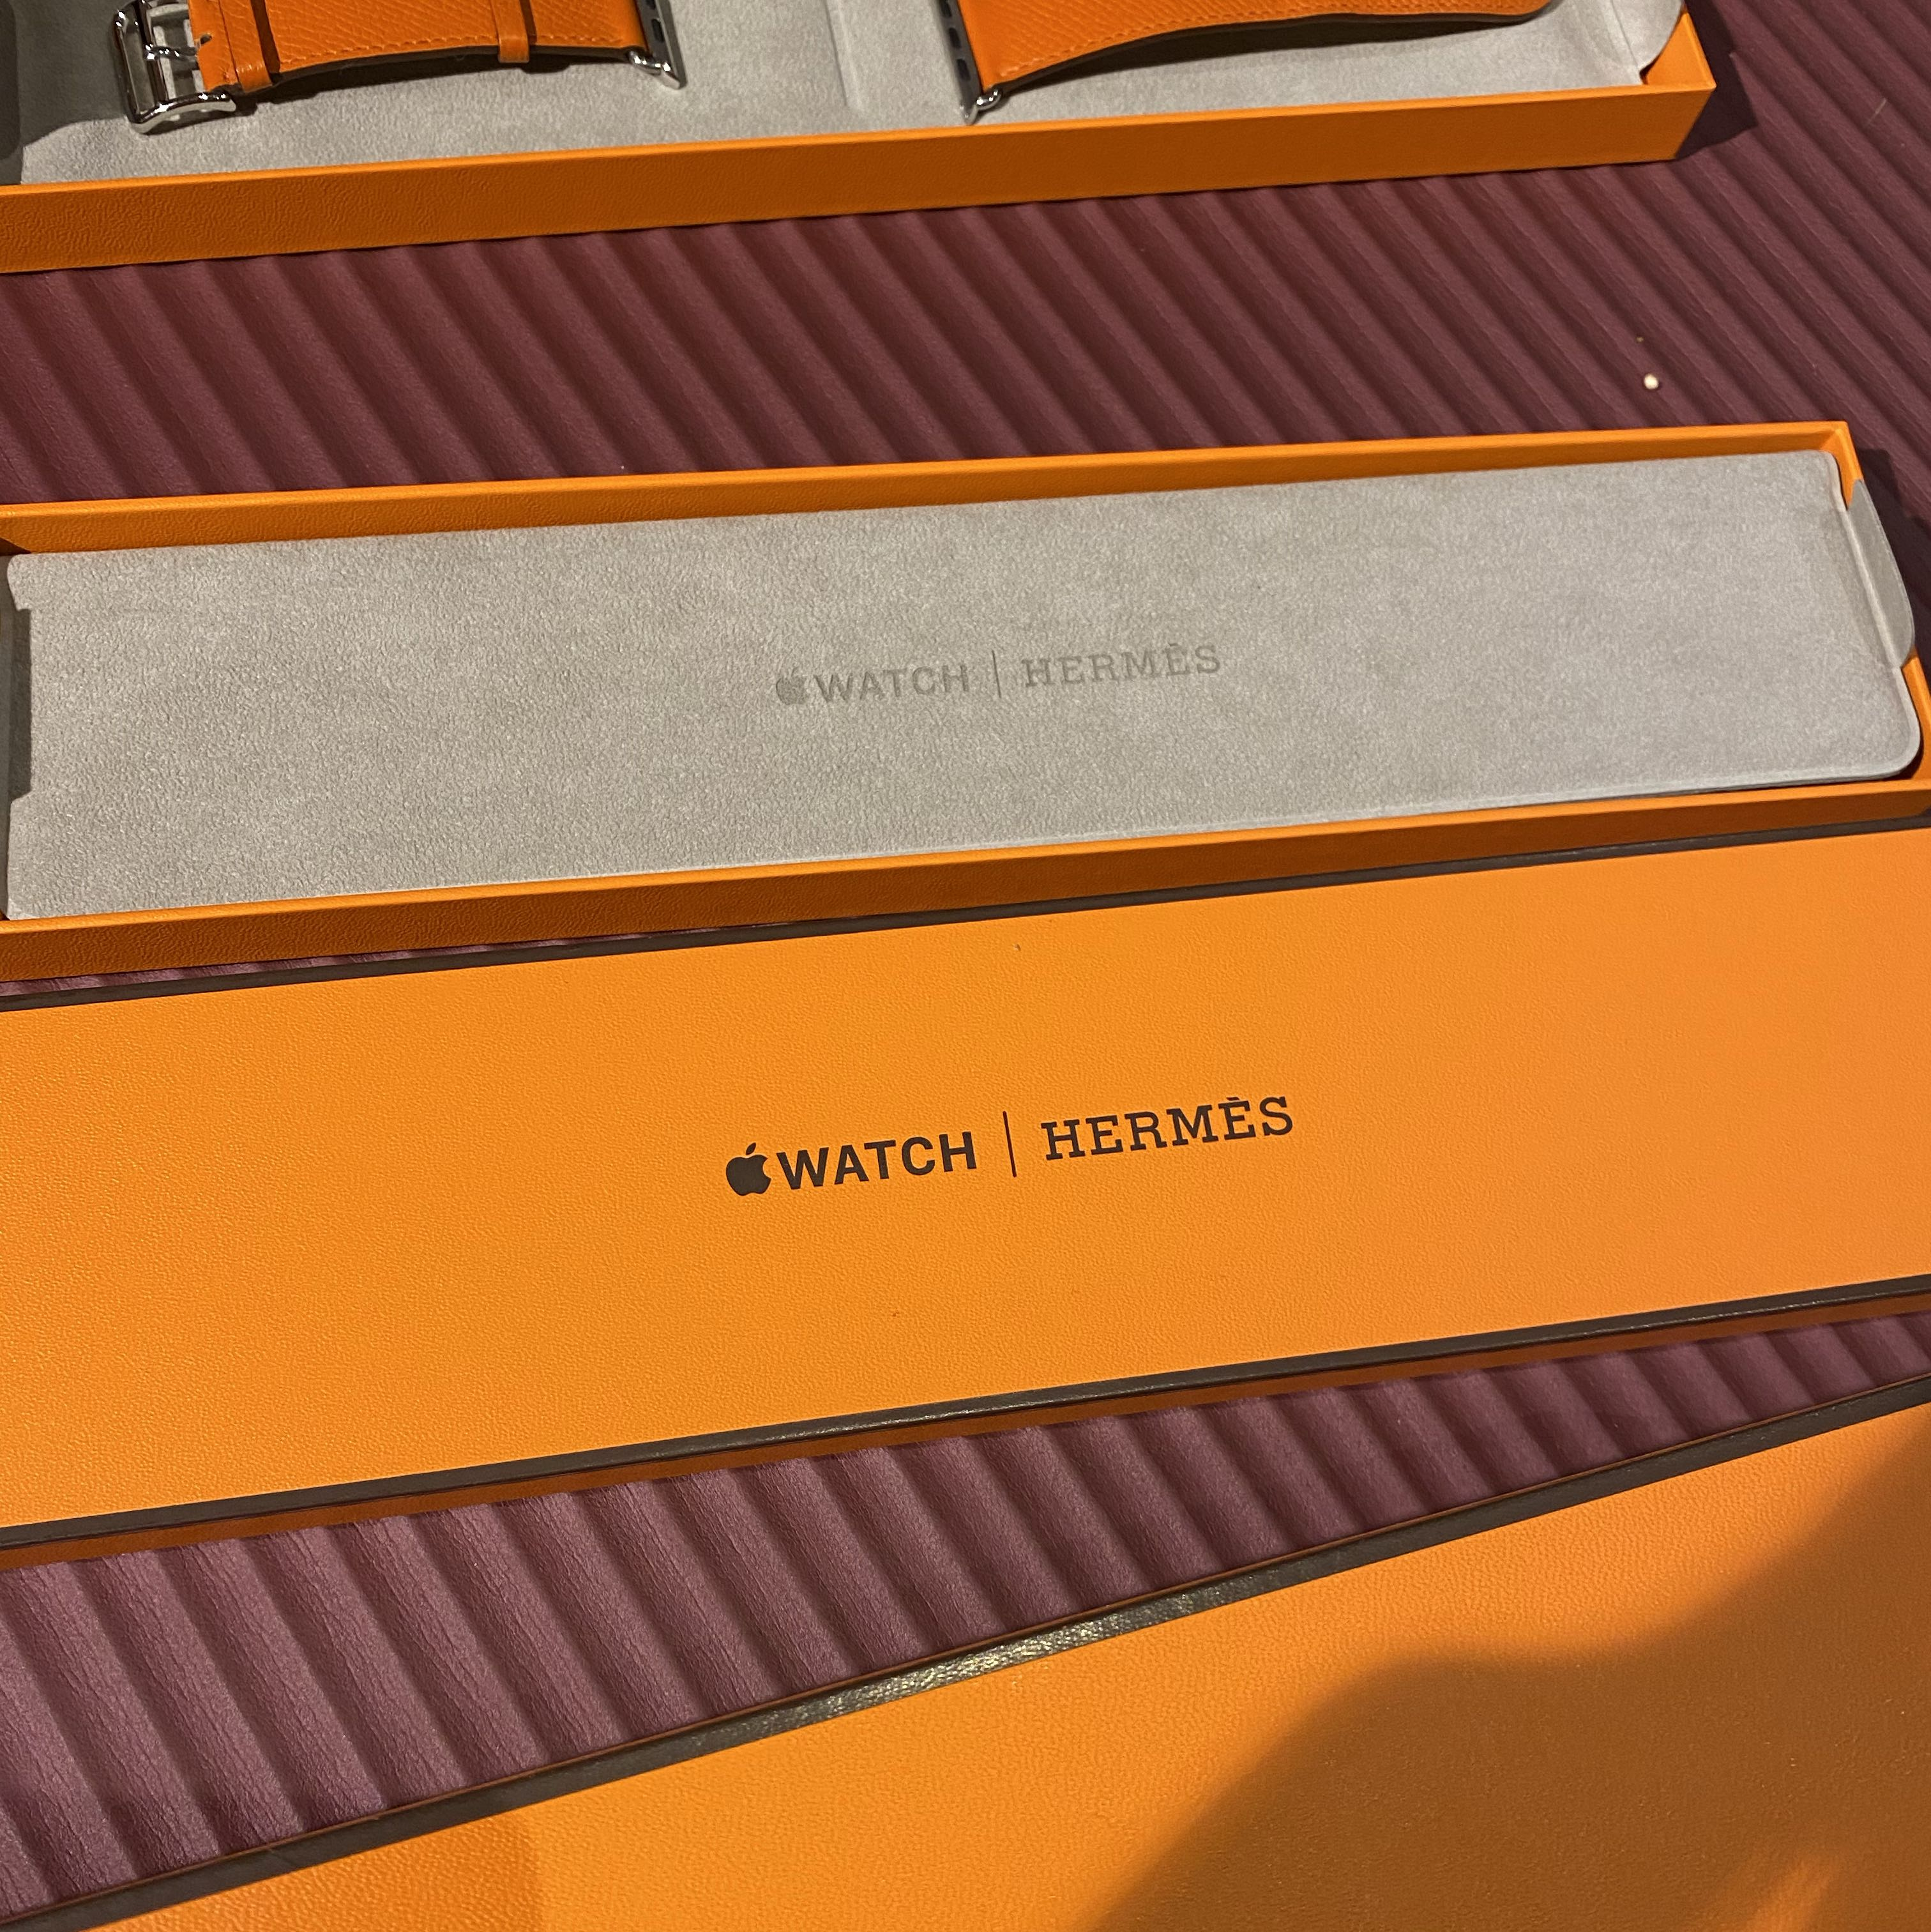 Brand new Apple Watch Hermes 44mm LTE Series 4 03/2021 used band Hermes4